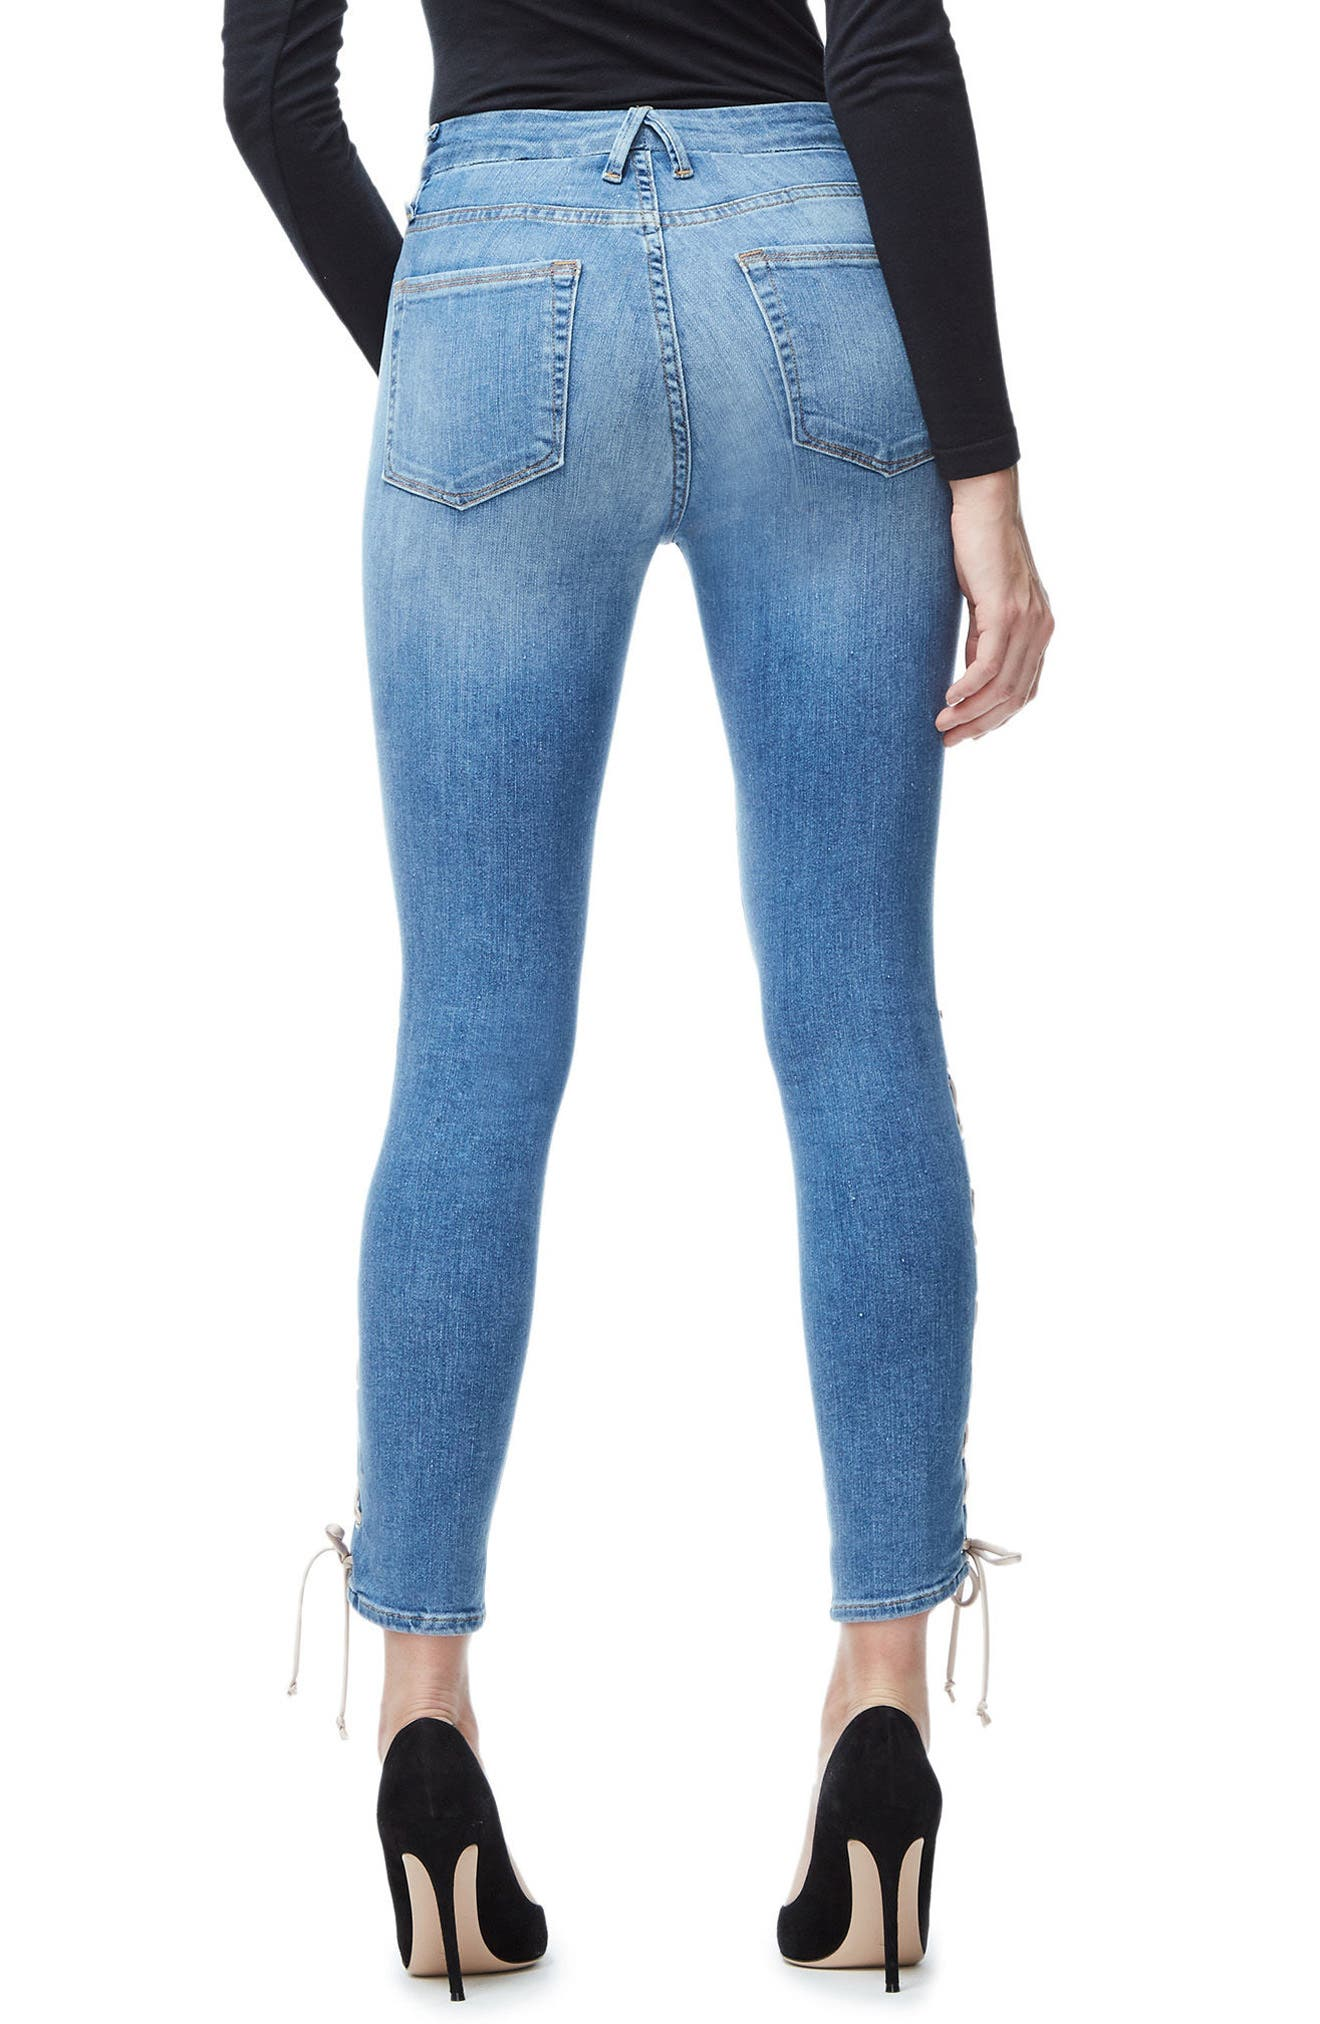 Good Legs Lace-Up High Waist Skinny Jeans,                             Alternate thumbnail 2, color,                             401